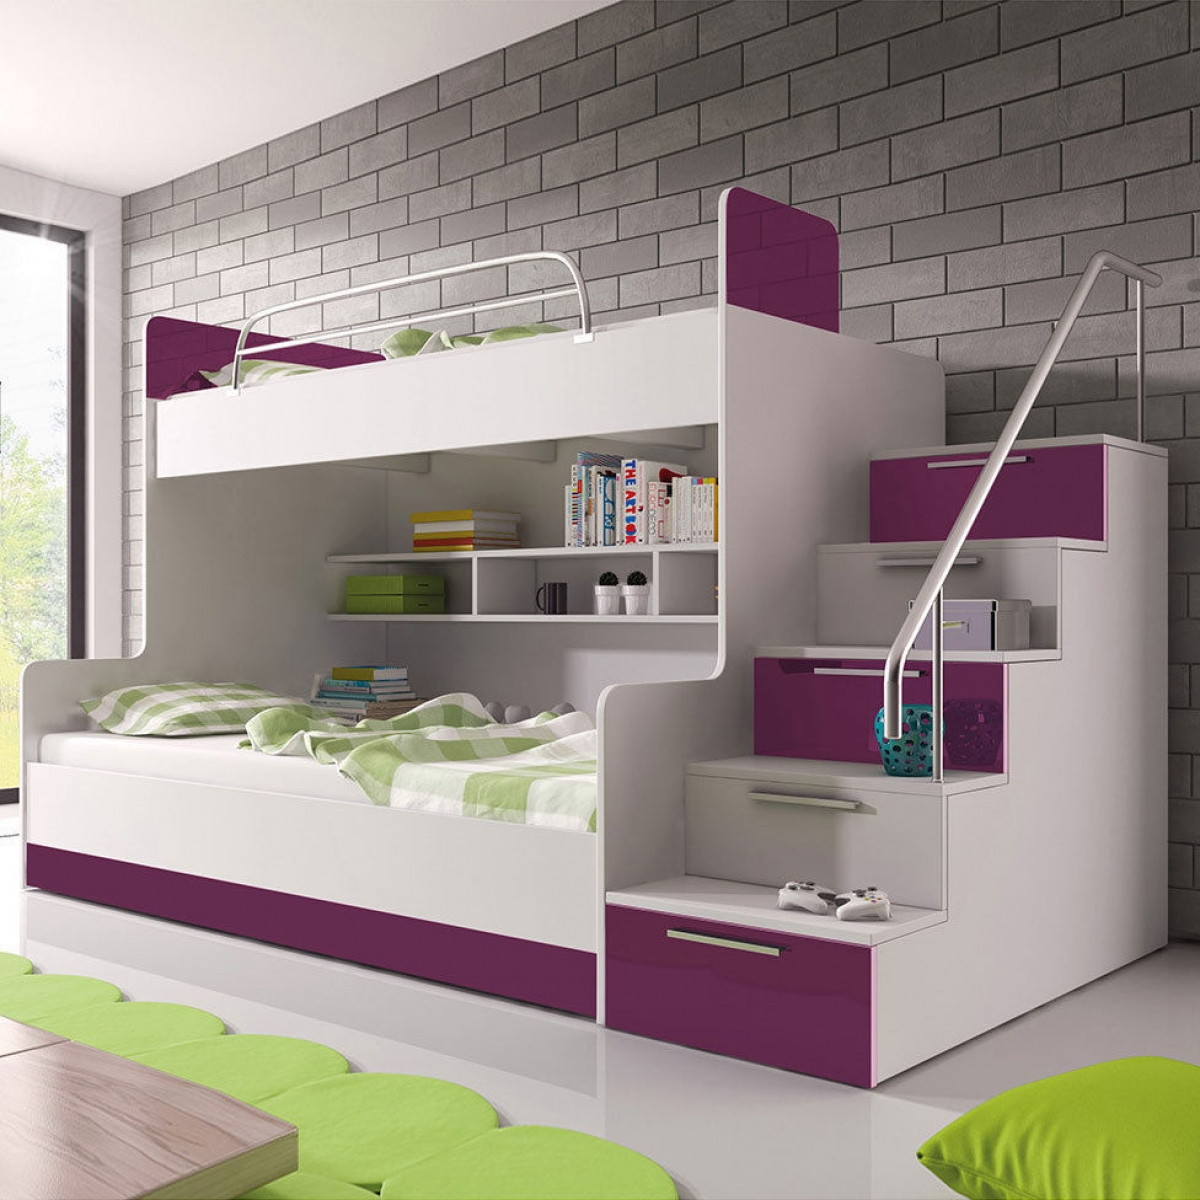 hochbett 2 personen hochbett 3 personen weis m bel ideen. Black Bedroom Furniture Sets. Home Design Ideas